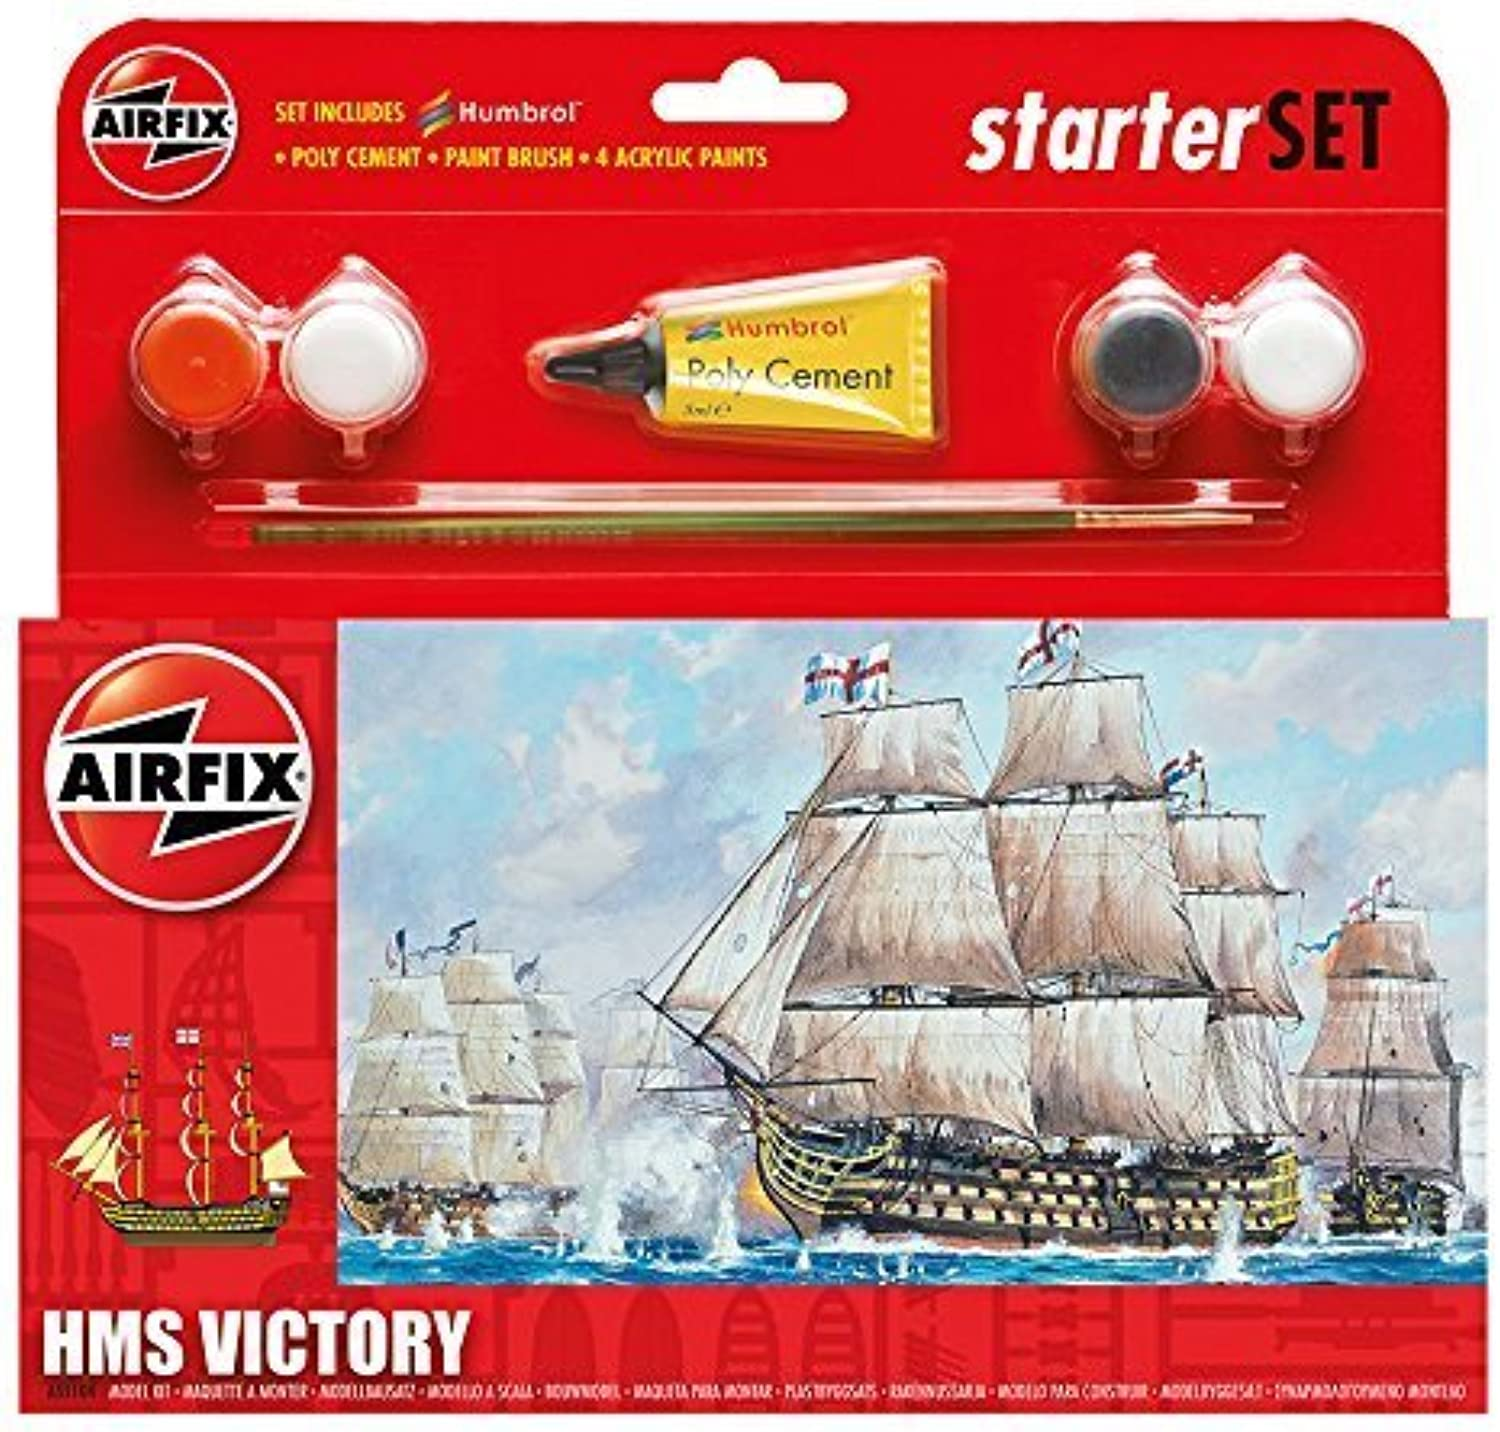 Airfix HMS Victory Starter Gift Set by Airfix